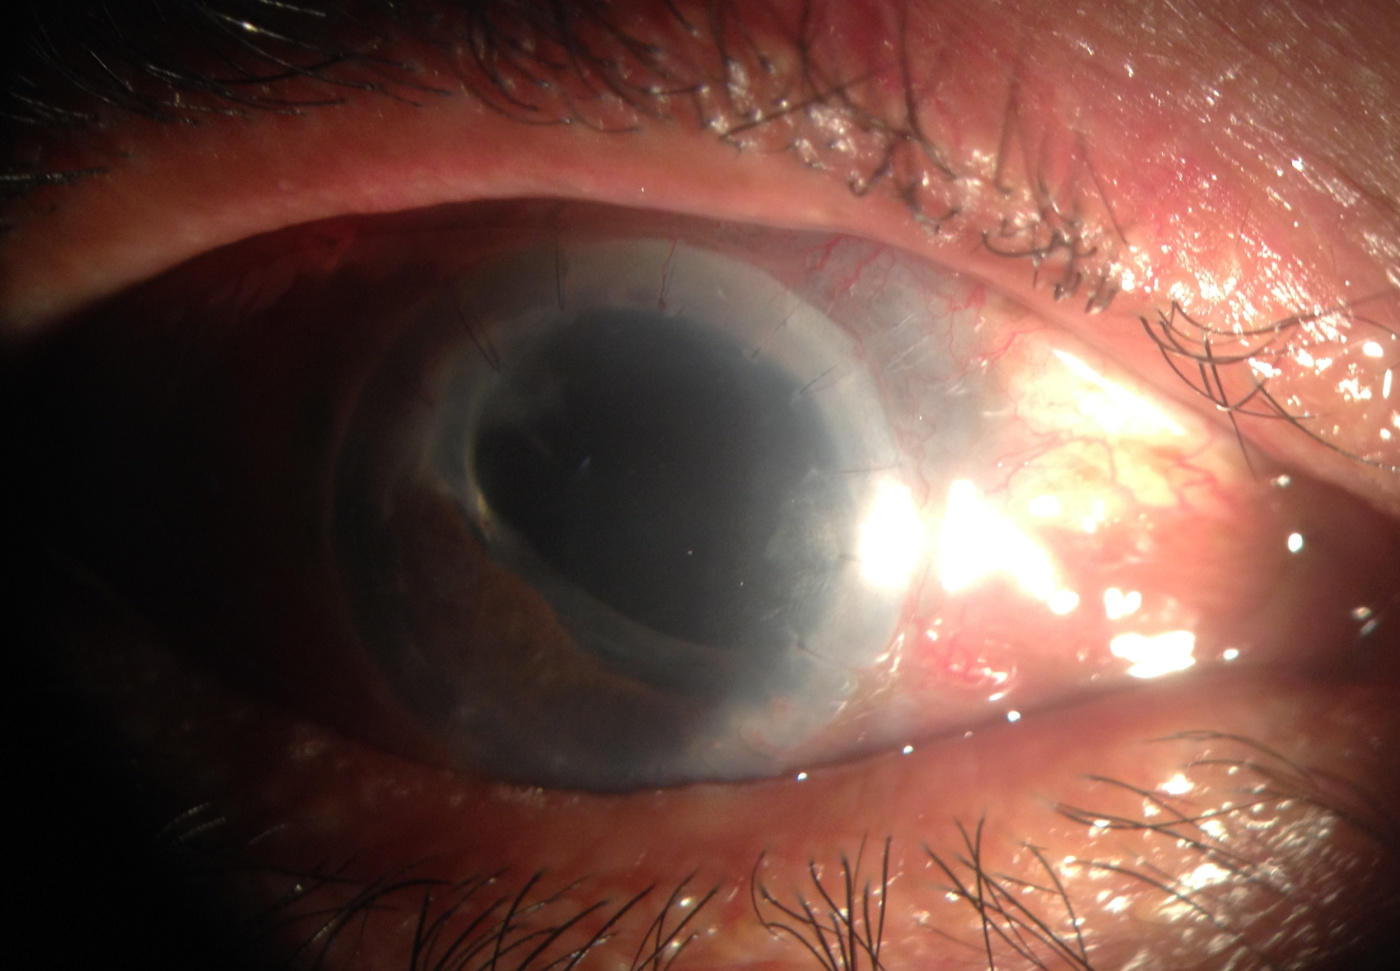 Anterior aspect of the eye showing the iris prolapse.